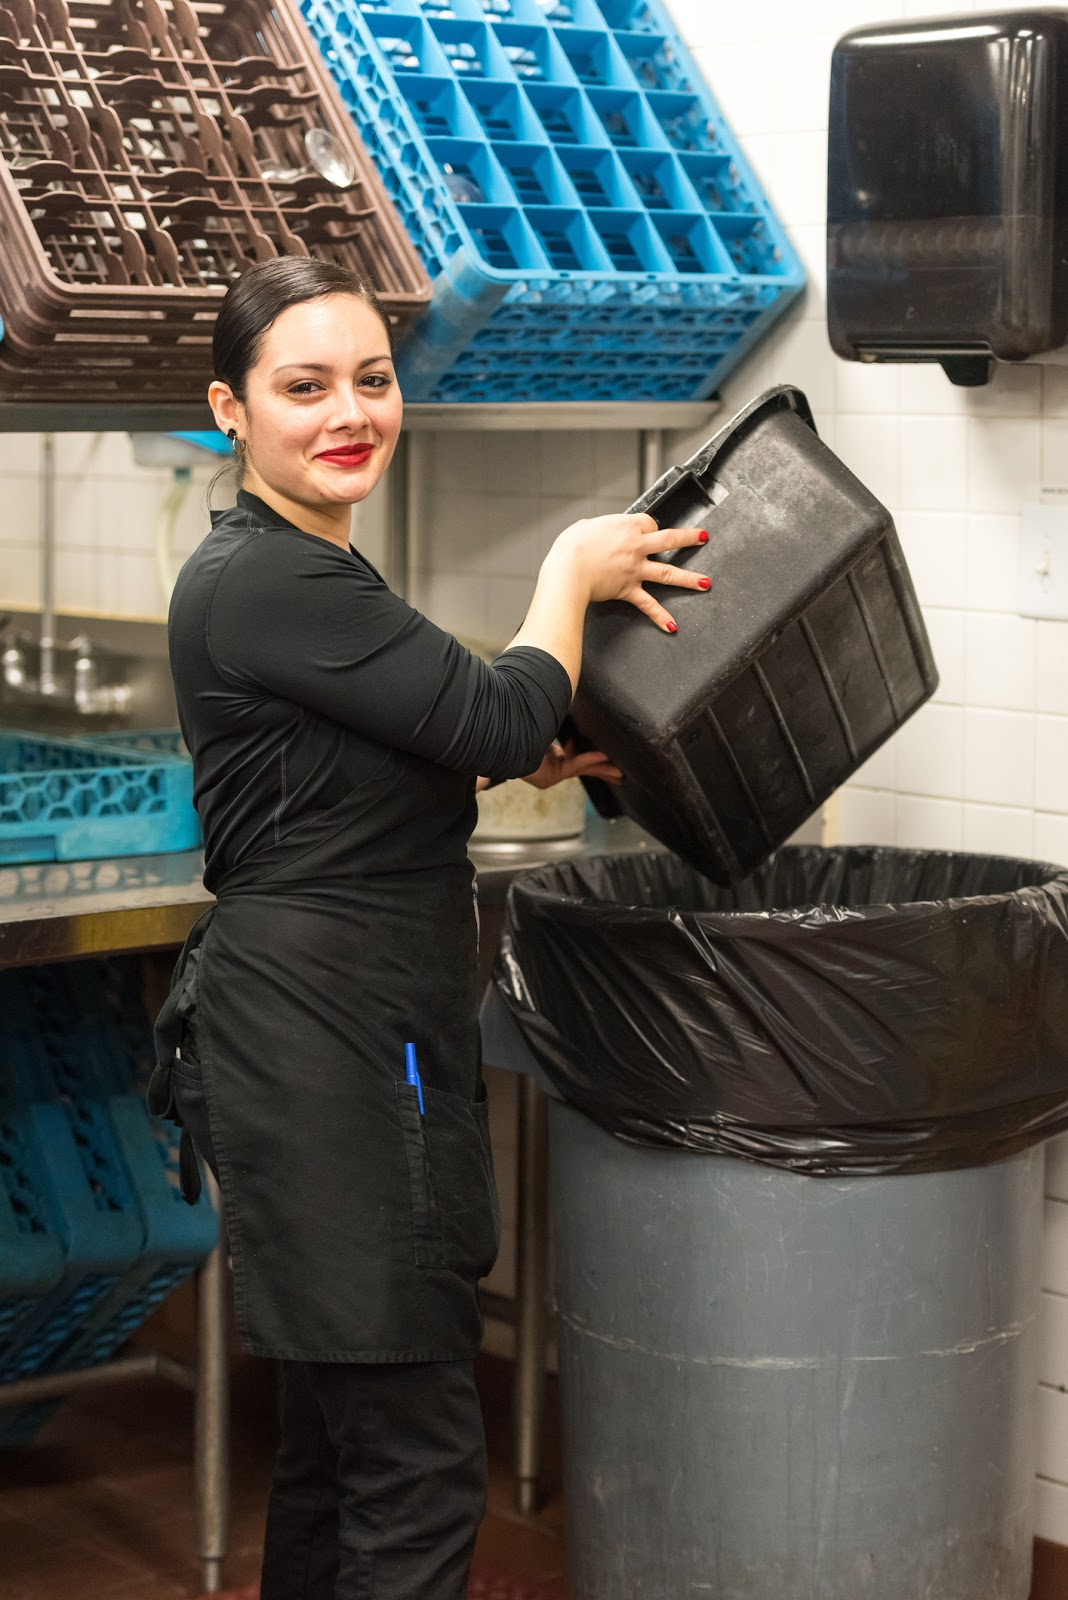 a female restaurant worker dumping food remains in the garbage